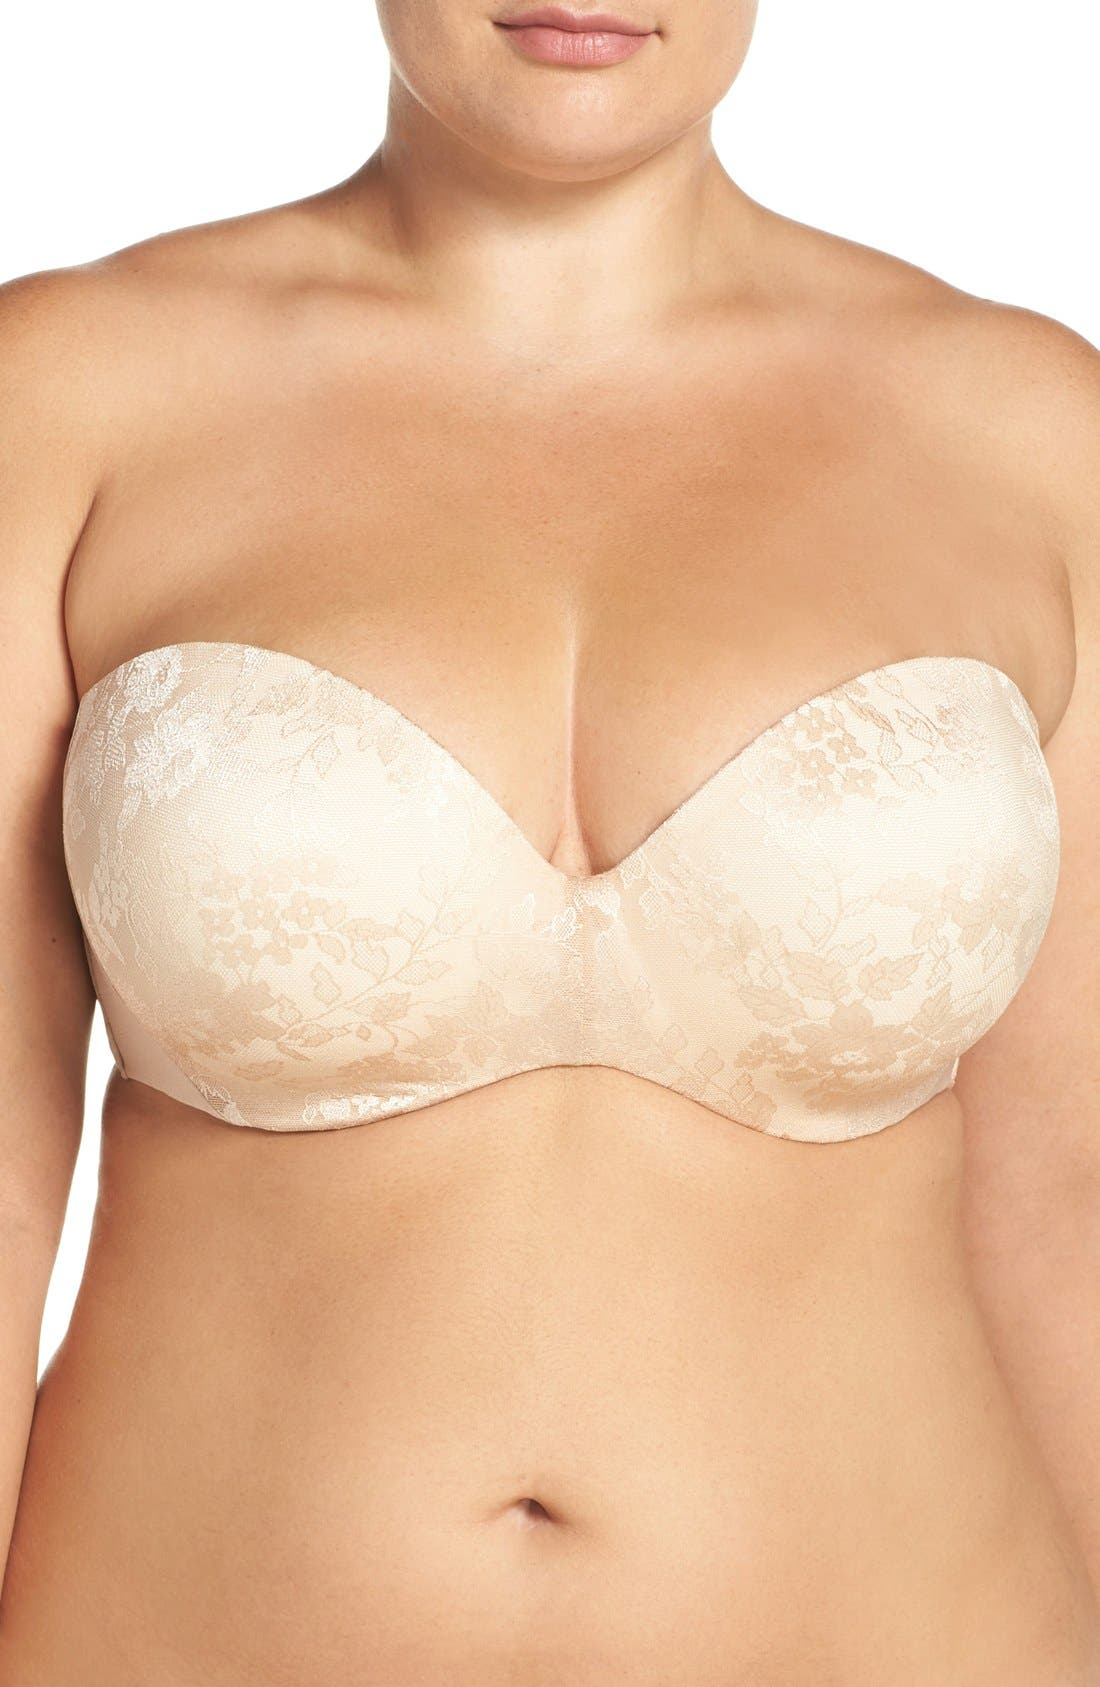 Strapless Underwire Push-Up Bra,                         Main,                         color, Nude